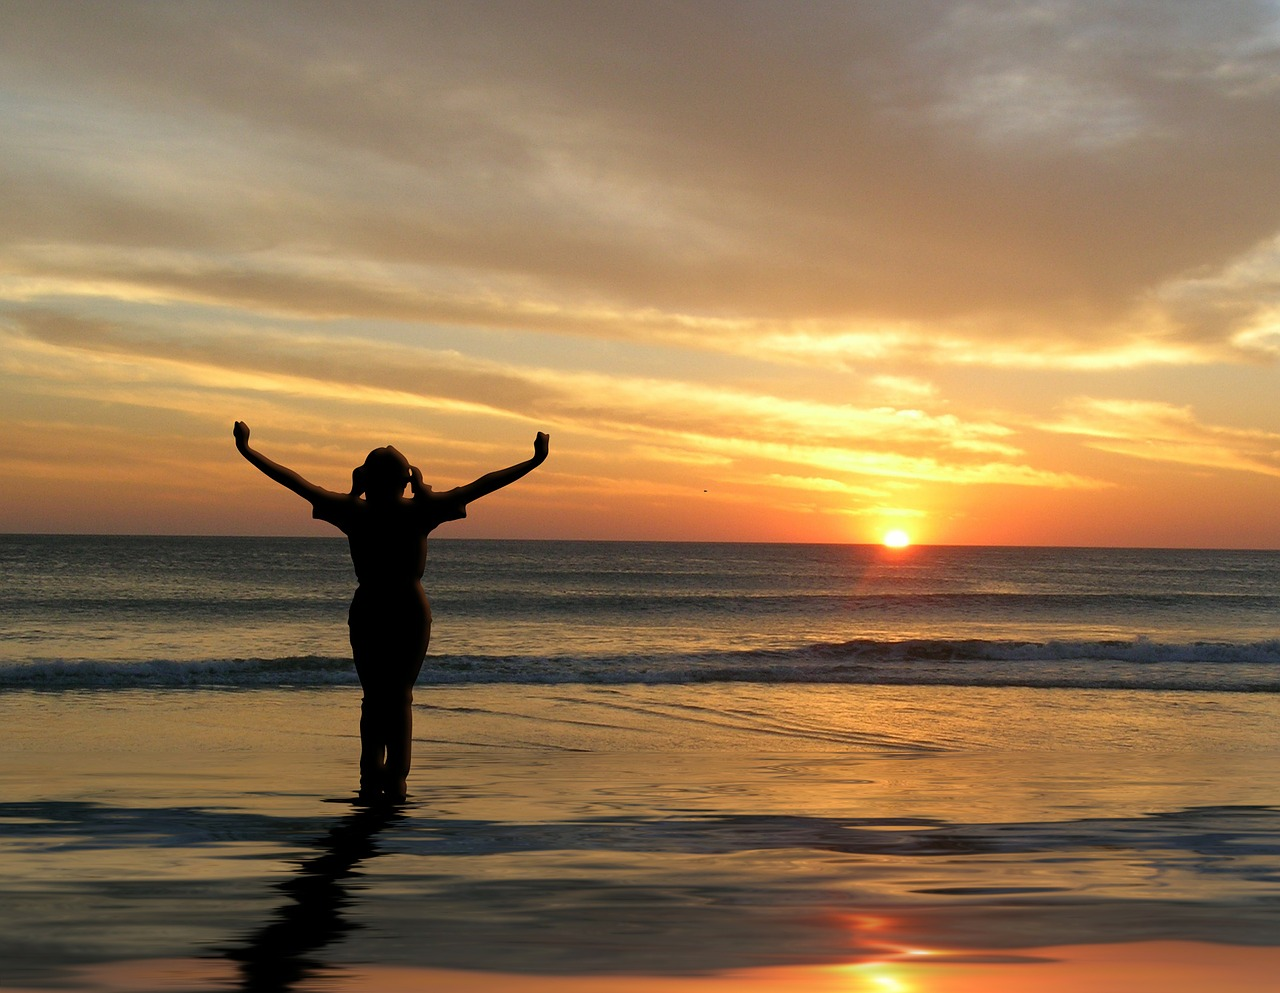 image of girl with outstretched arms looking at sunset